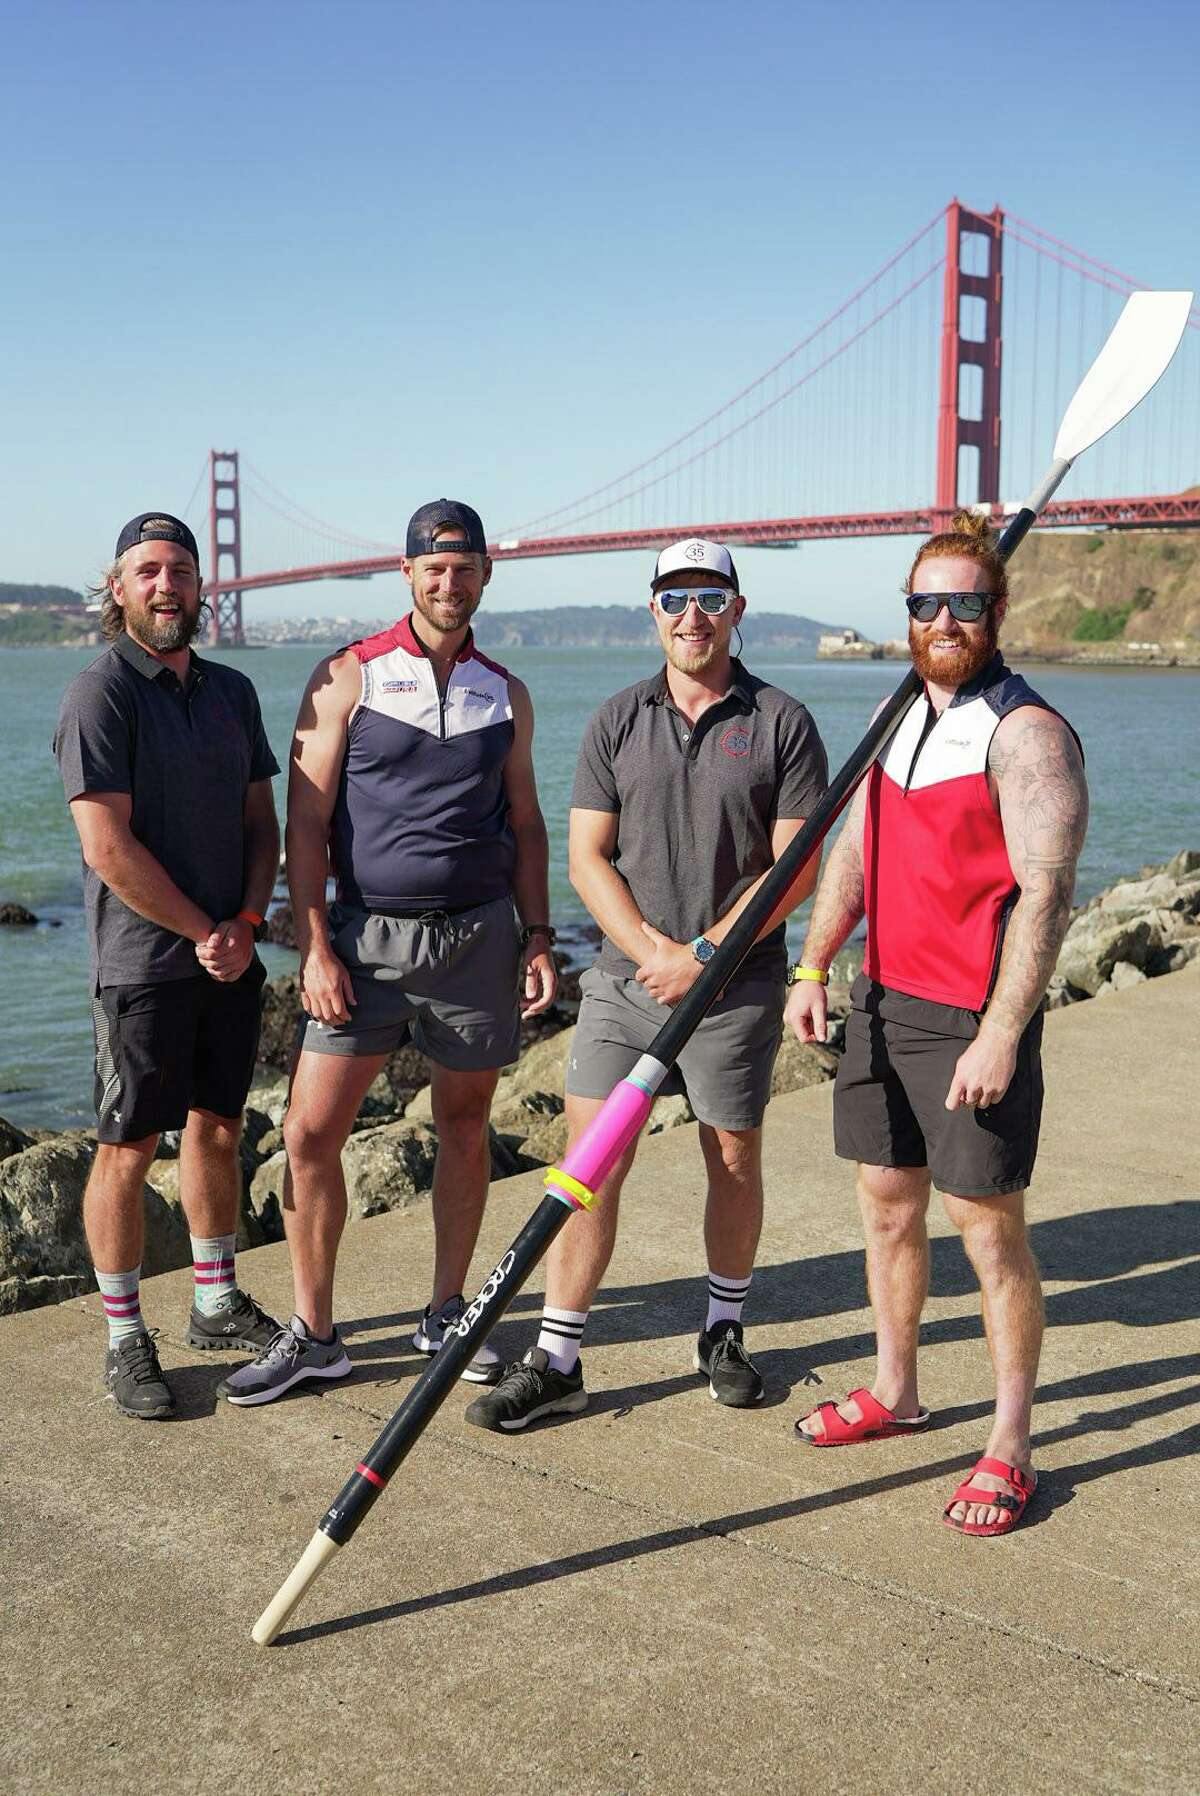 Jason Caldwell, second from the left, and the Latitude 35 crew before their bid to row to Hawaii.